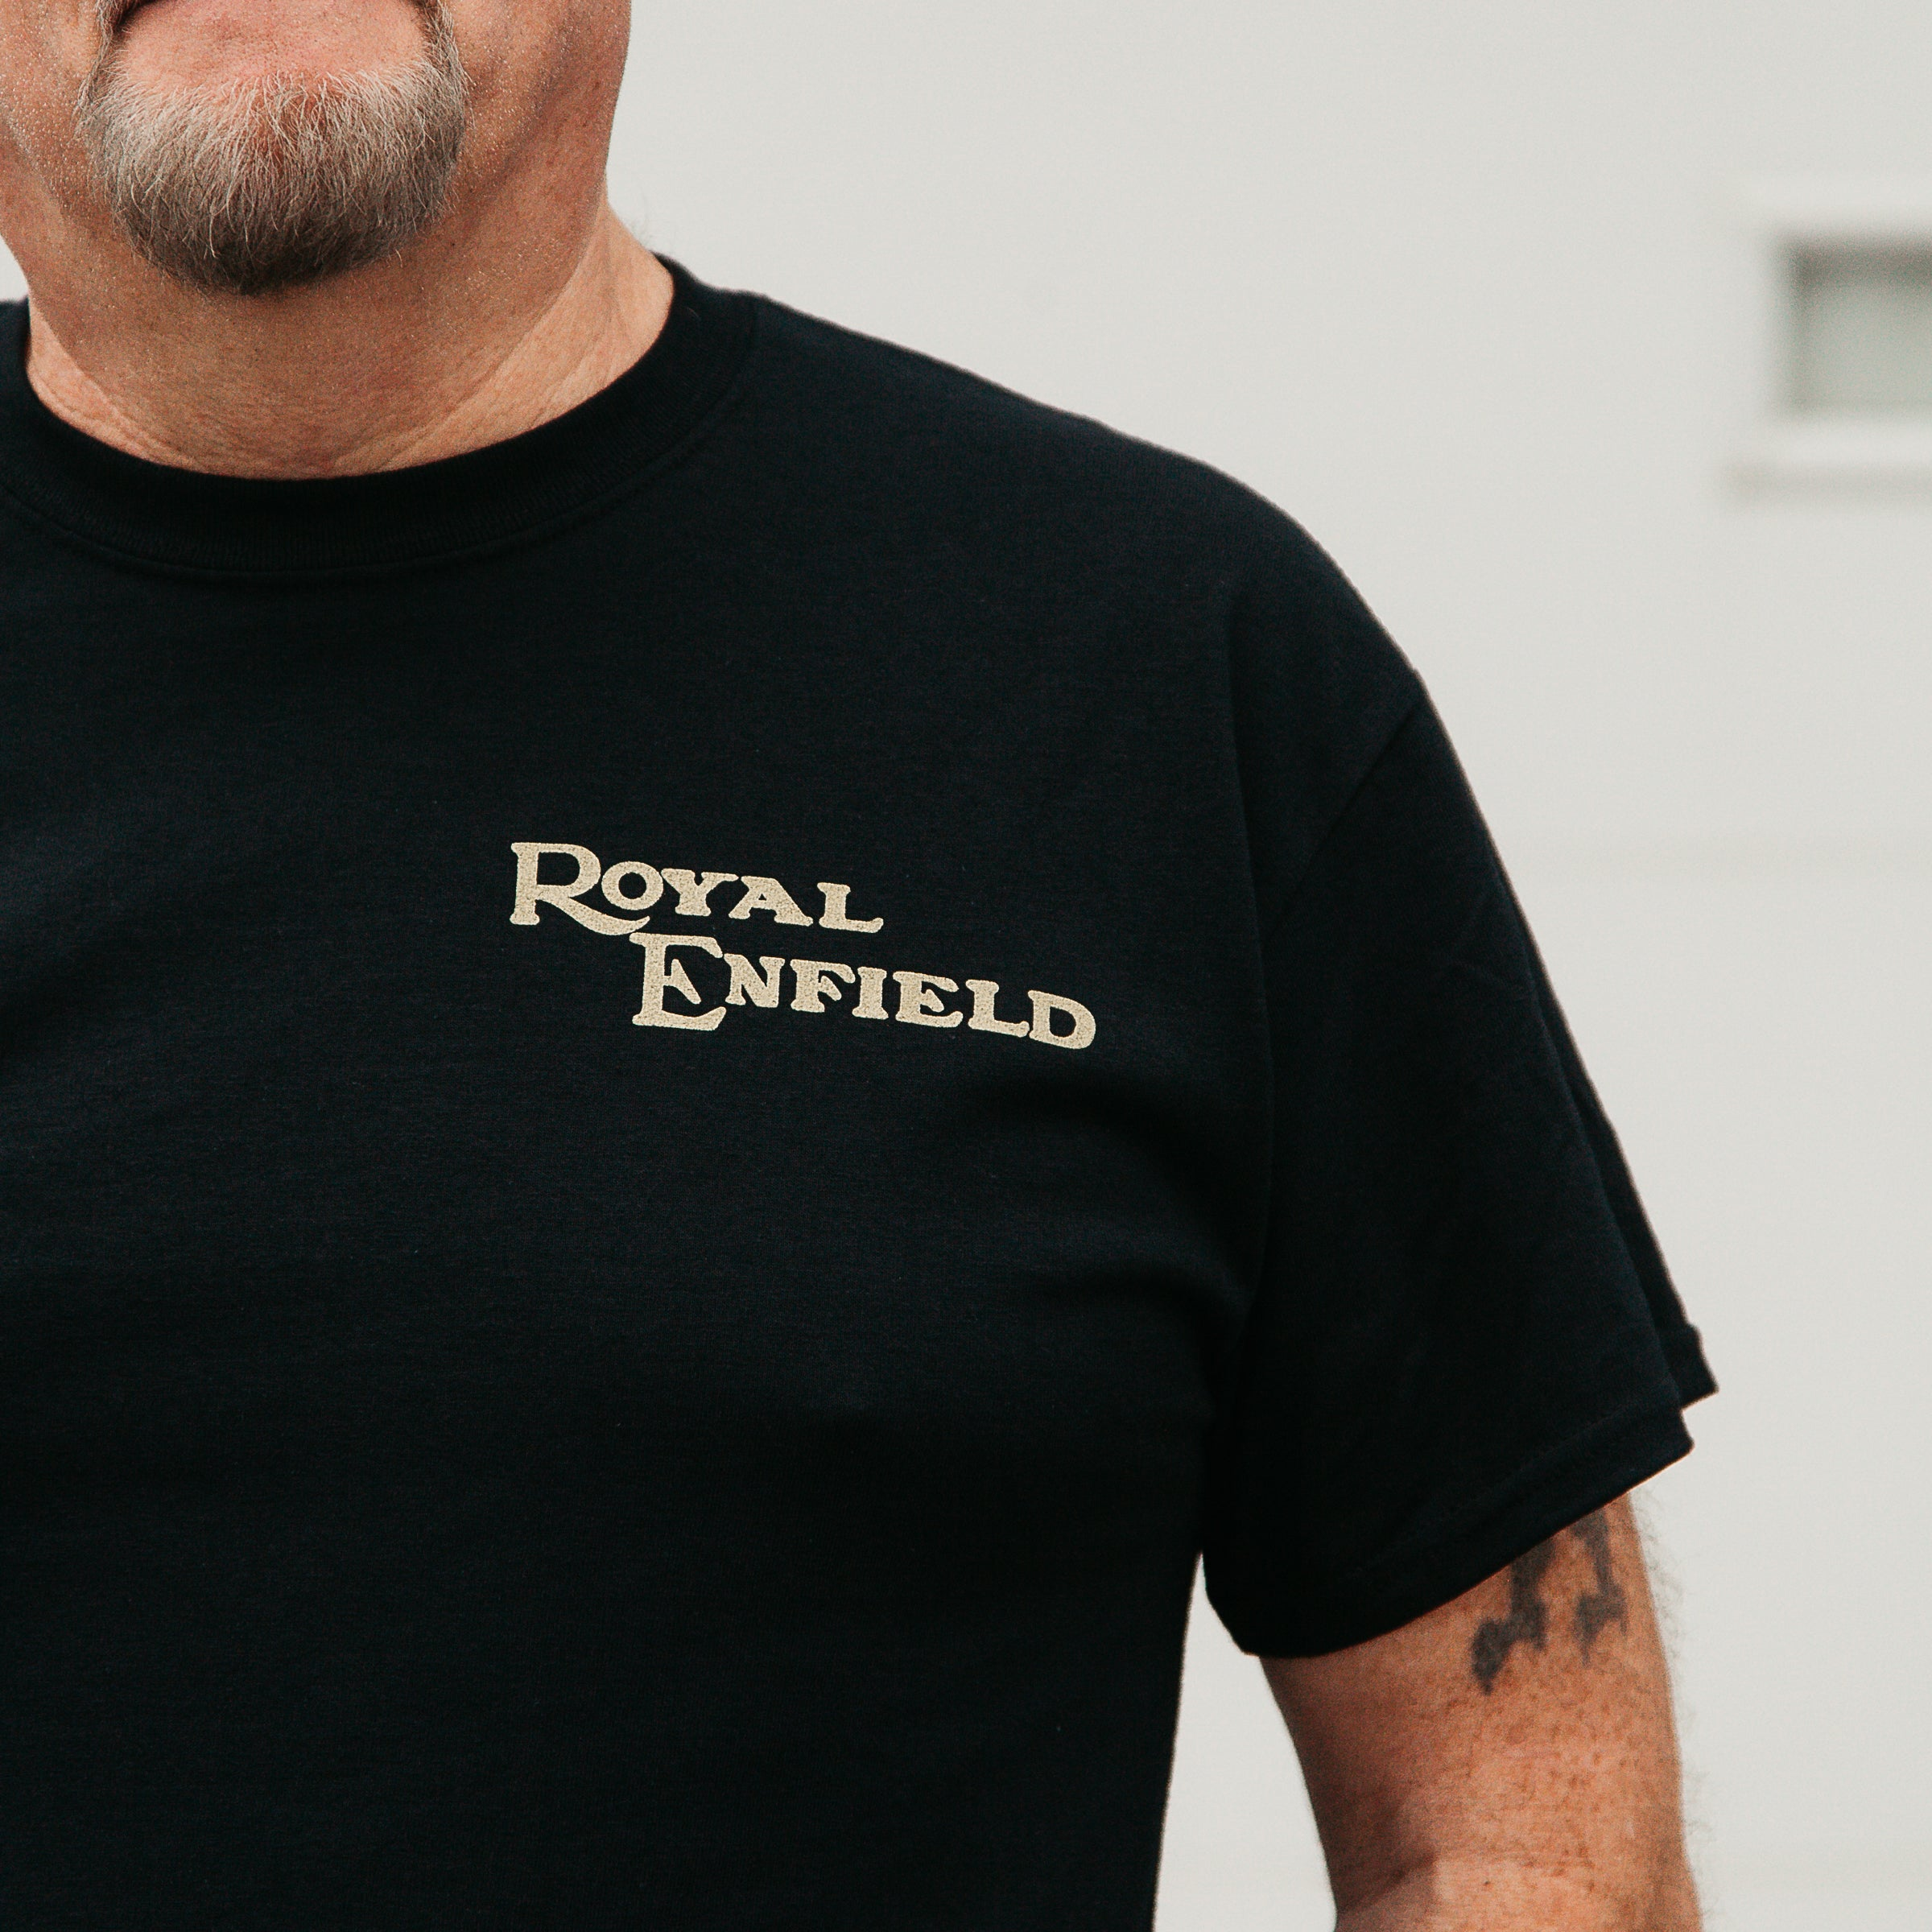 "Dreamcycle Motorcycle Museum |  Mans shoulder wearing black shirt with text ""Royal Enfield"" in lifestyle setting ."